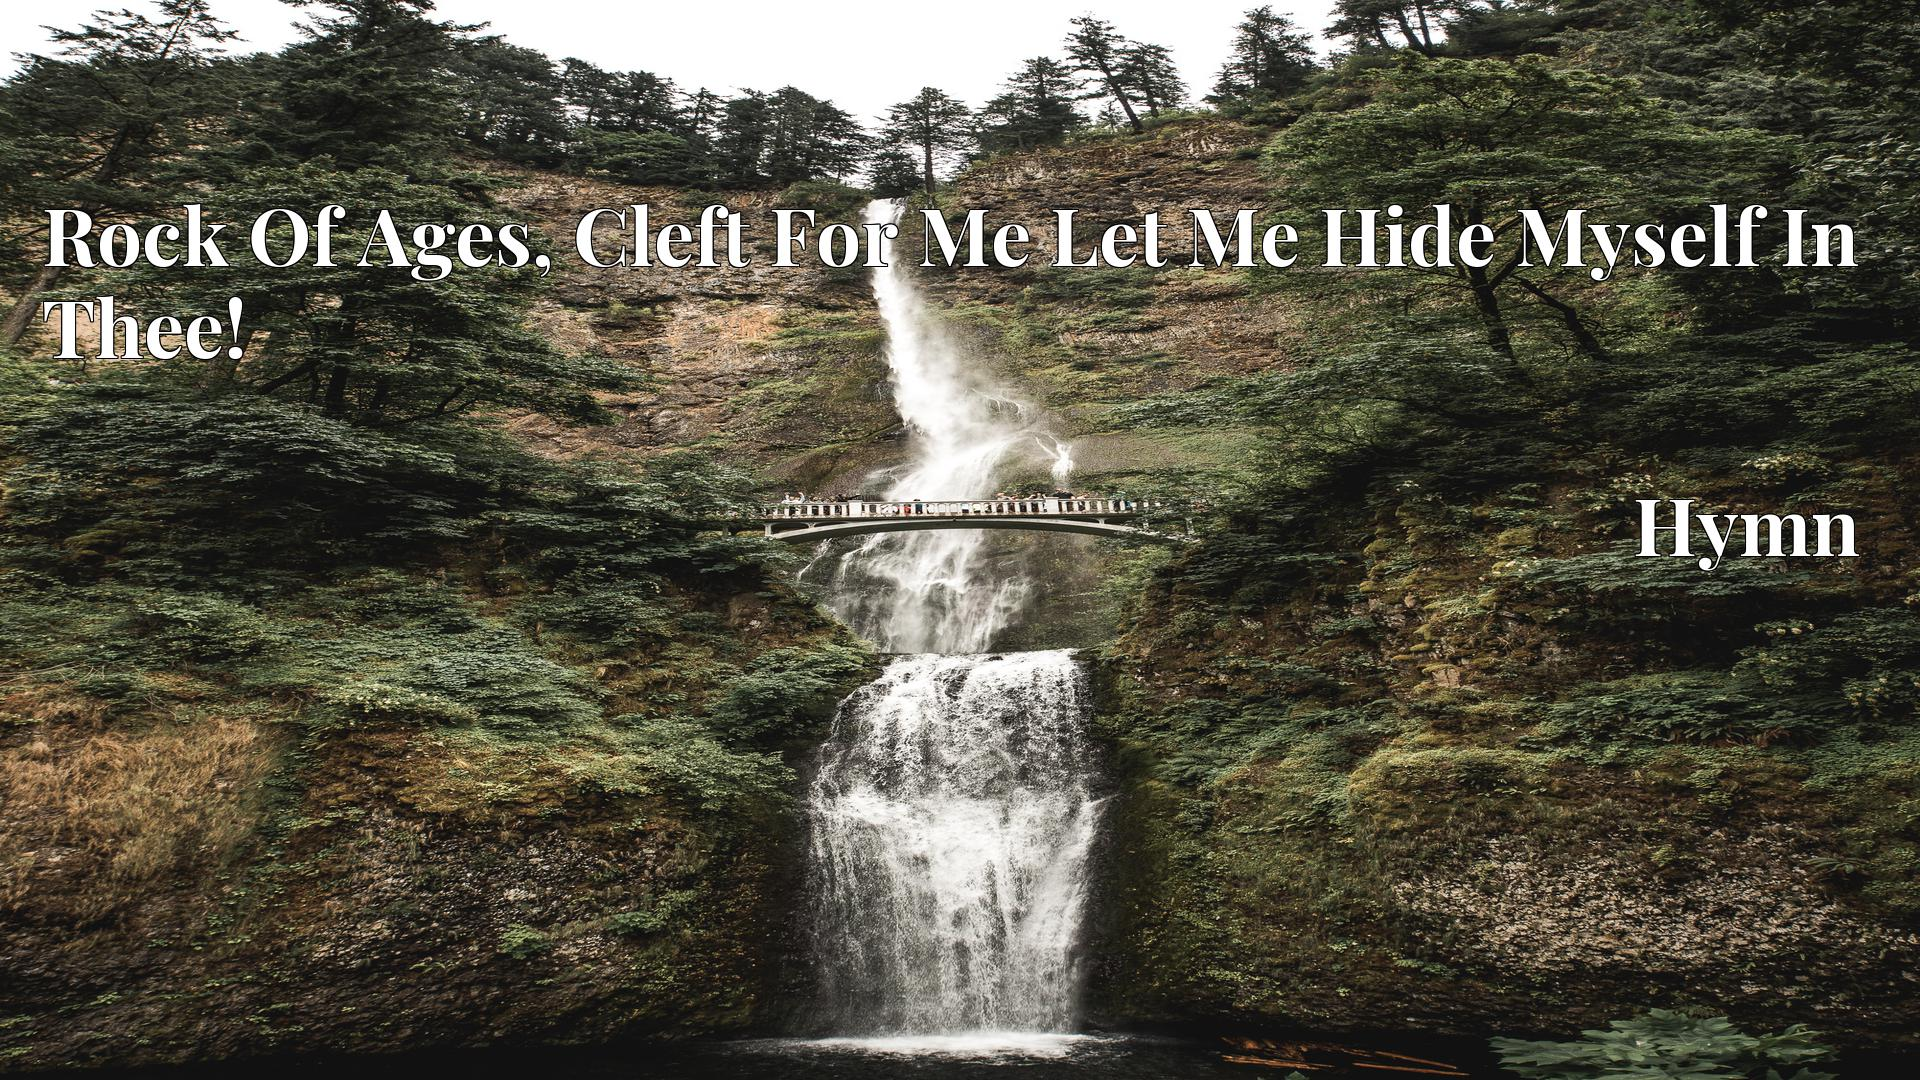 Rock Of Ages, Cleft For Me Let Me Hide Myself In Thee! - Hymn